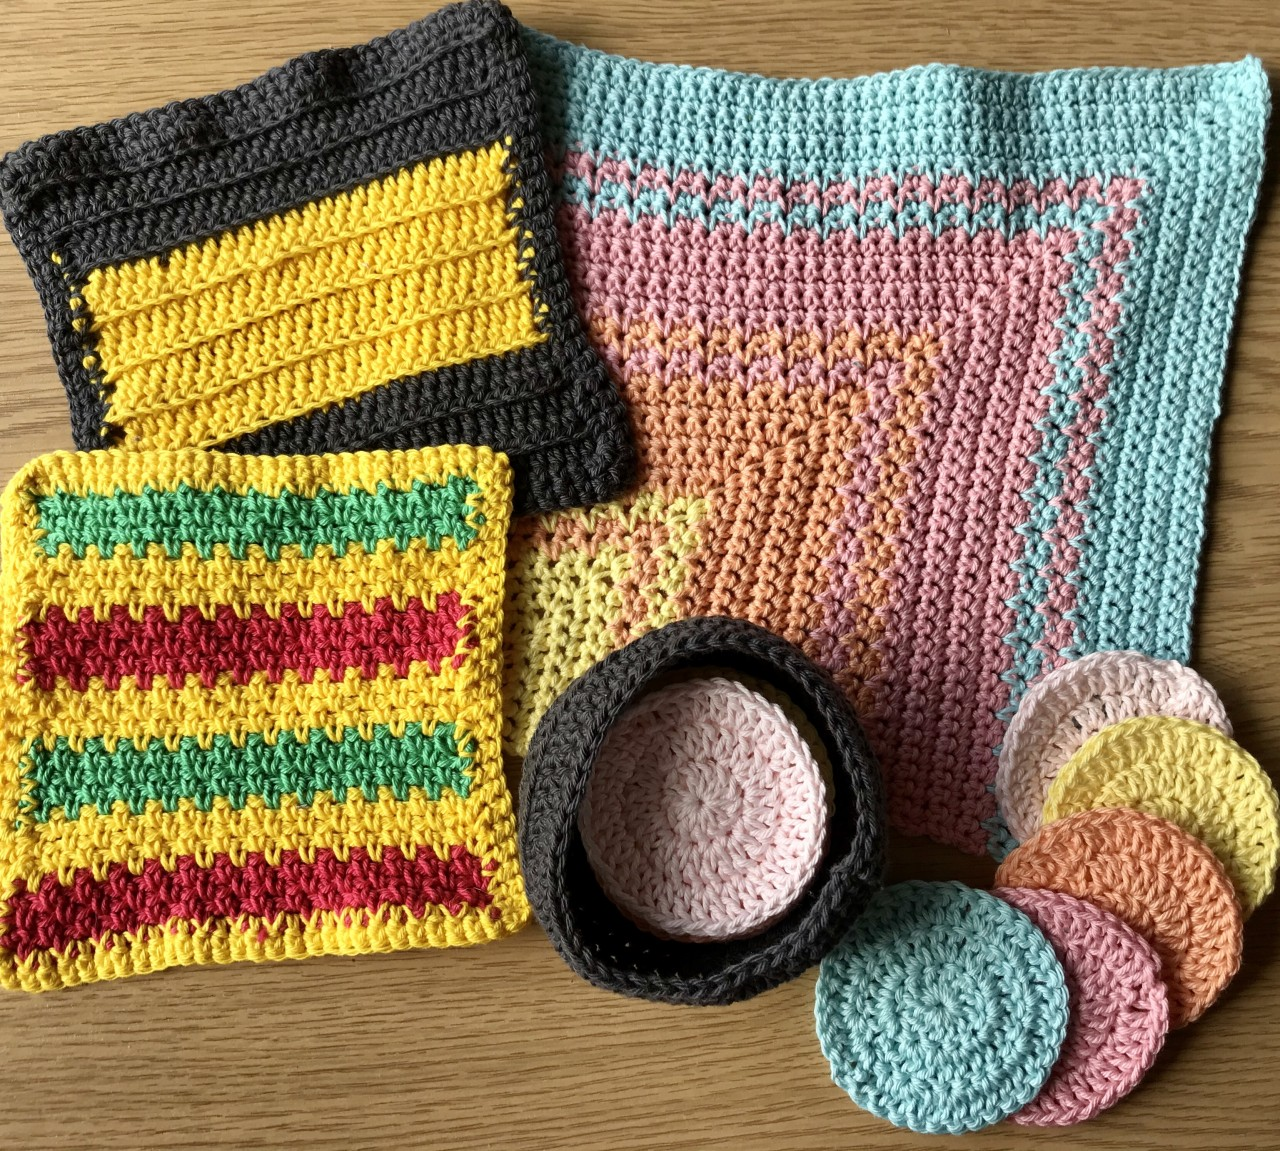 Image of multiple crocheted washcloths and reusable face pads in a basket.